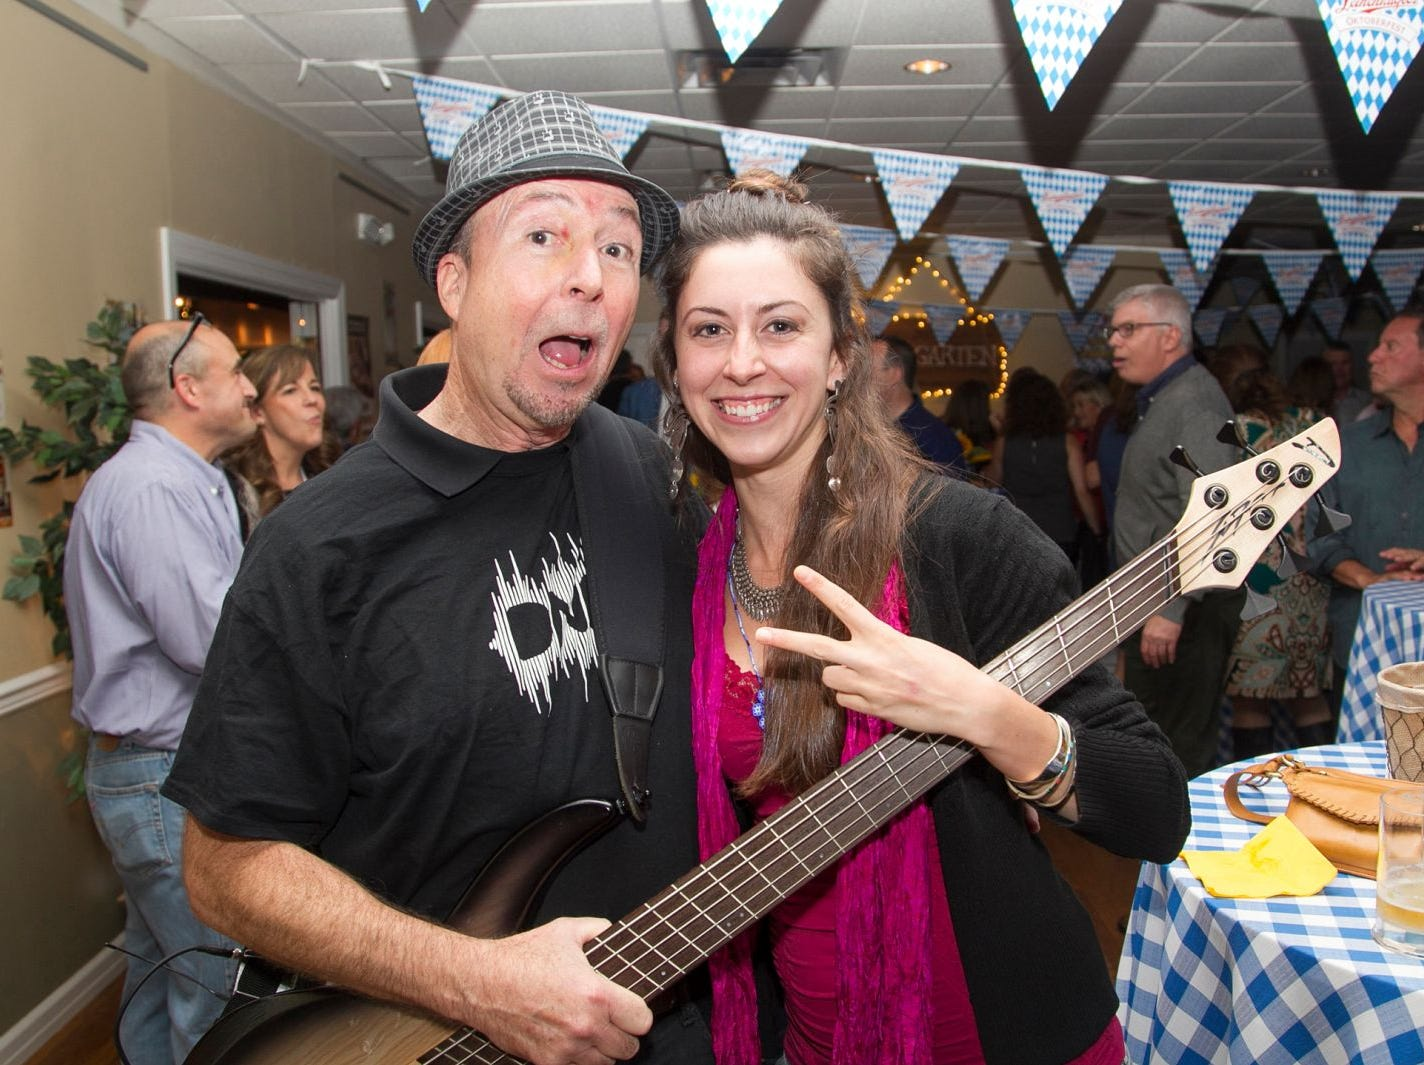 Steve DeMercado and Chelsea. Ridgewood Education Foundation's 2018 Oktoberfest at the Hermitage. 09/29/2018